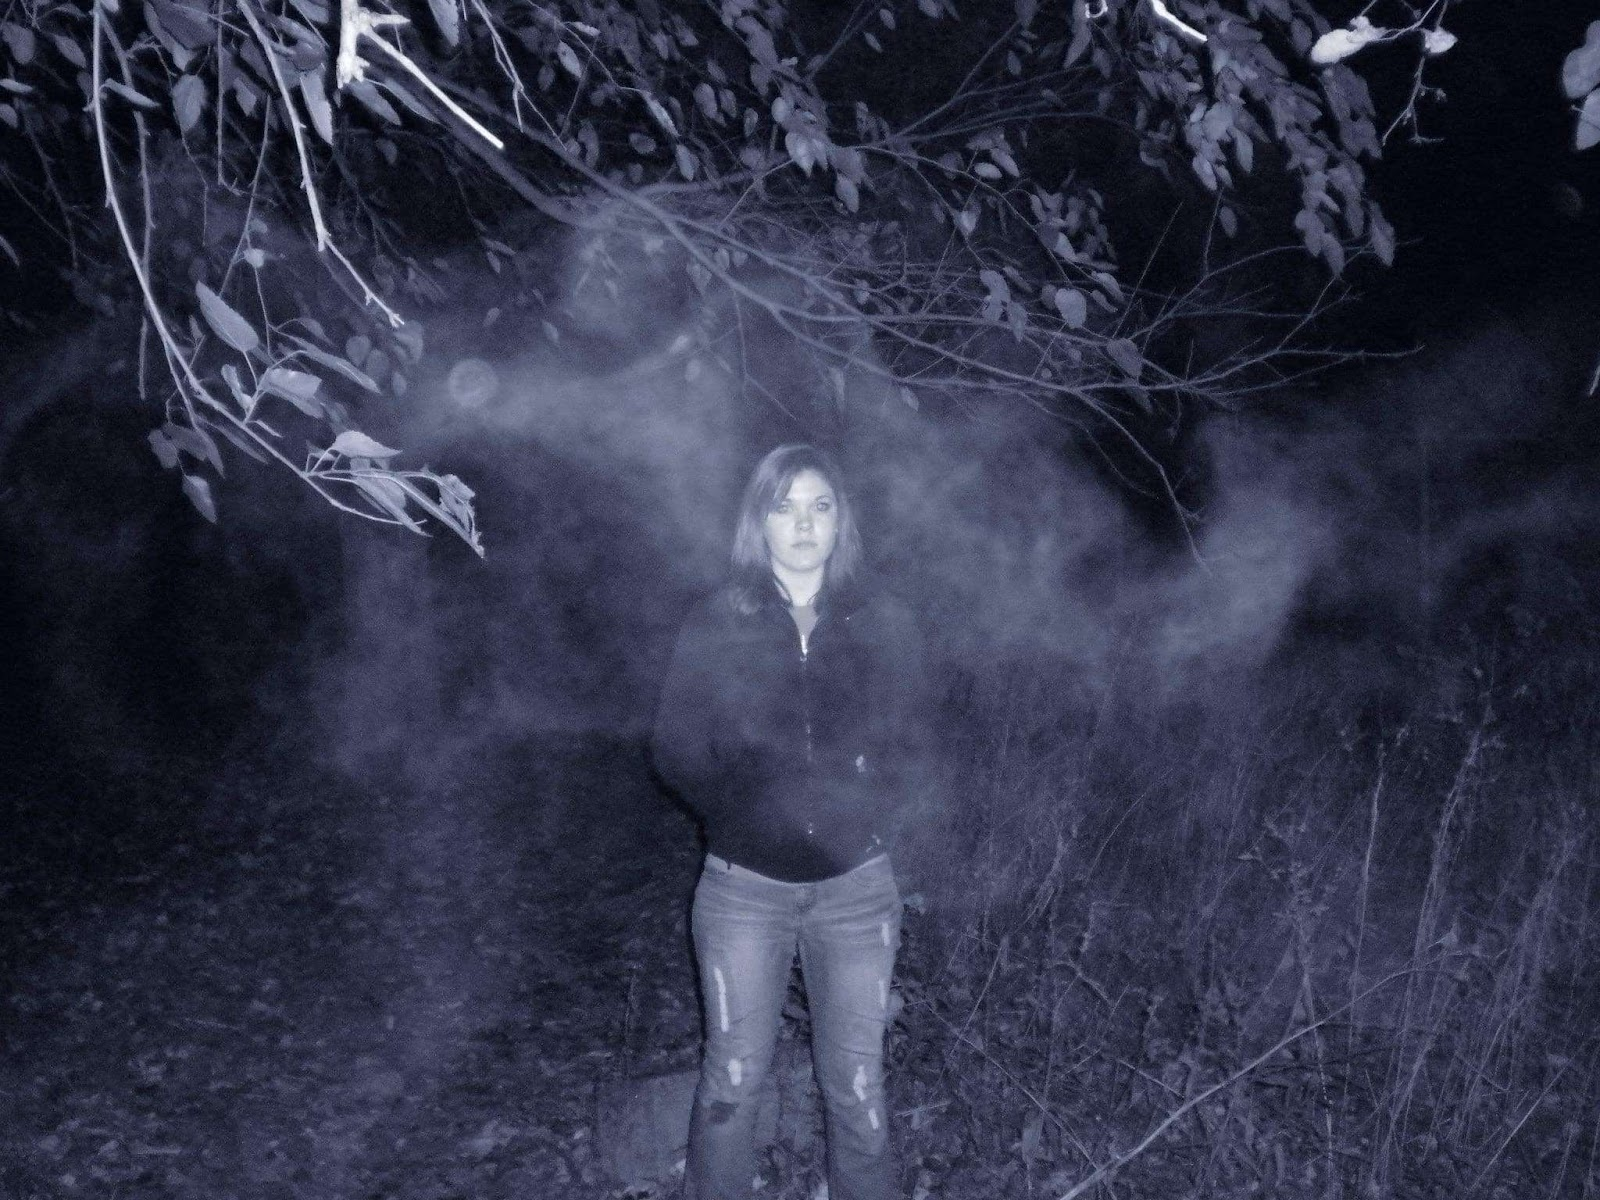 Facebook July 11, 2019 Kenneth Deheve  A few years ago, my friends and I visited one the most haunted places in the country, Bachelors Grove, and we took a photo of one of our friends, Heather Robson, standing under a tree. When we looked back at the photo, there was a suddenly a strange fog that appeared that was not there when we took the photo. We played with the contrast a little bit in the second photo. Still have no idea where it came from but this fucked us up good.